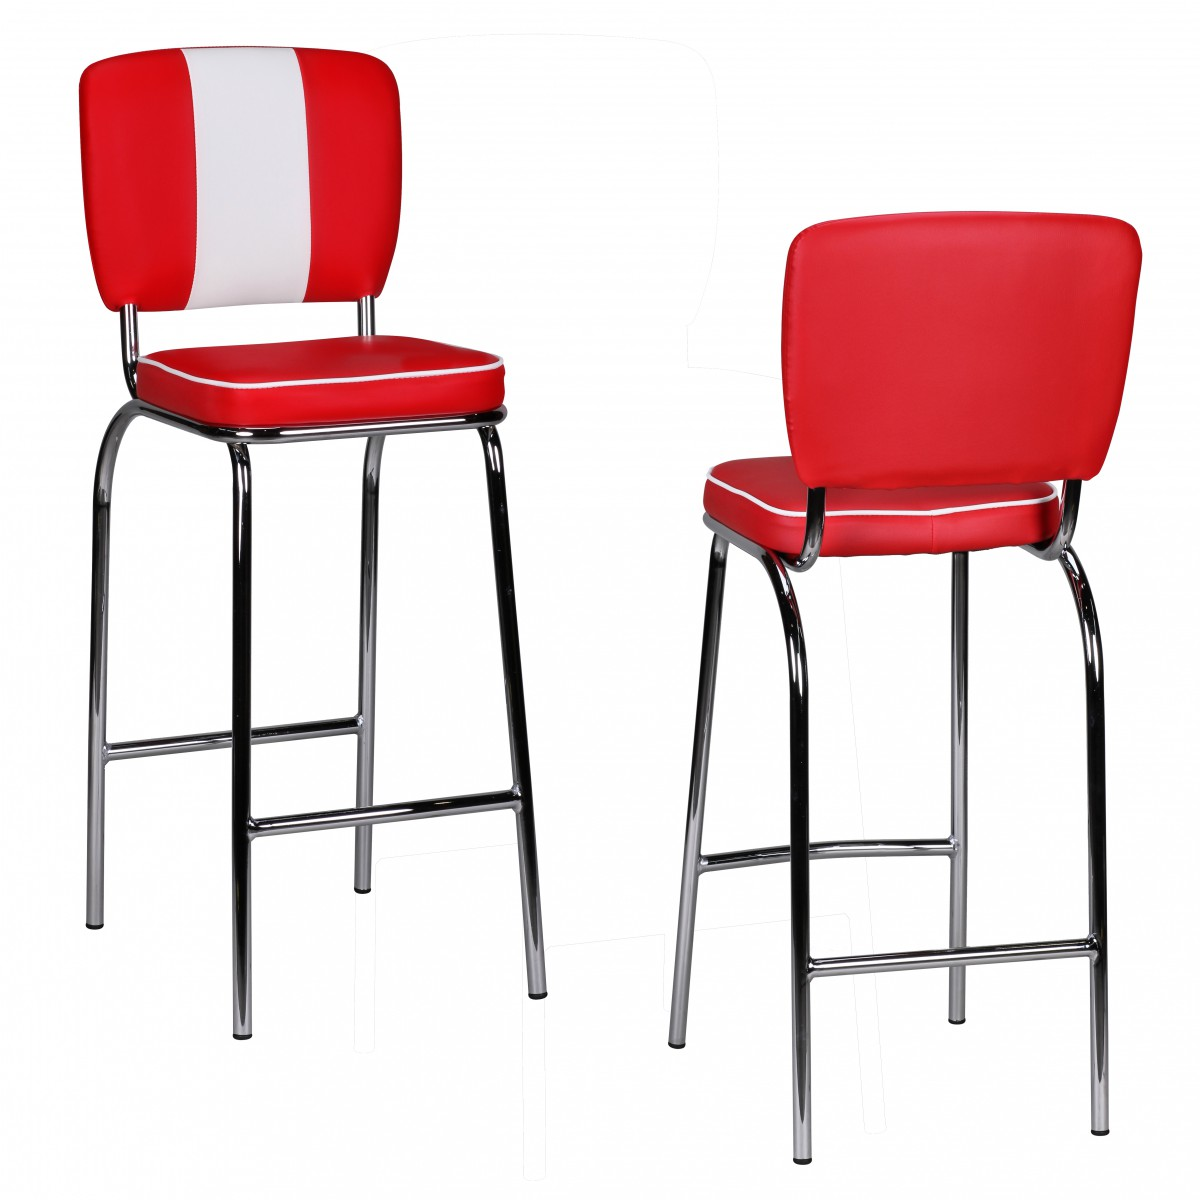 WOHNLING barstool American Diner 50s Retro Red White bar  : 39208 WOHNLING Barstuhl PAUL Diner rot WL1 718 WL7 from ebay.es size 1200 x 1200 jpeg 115kB